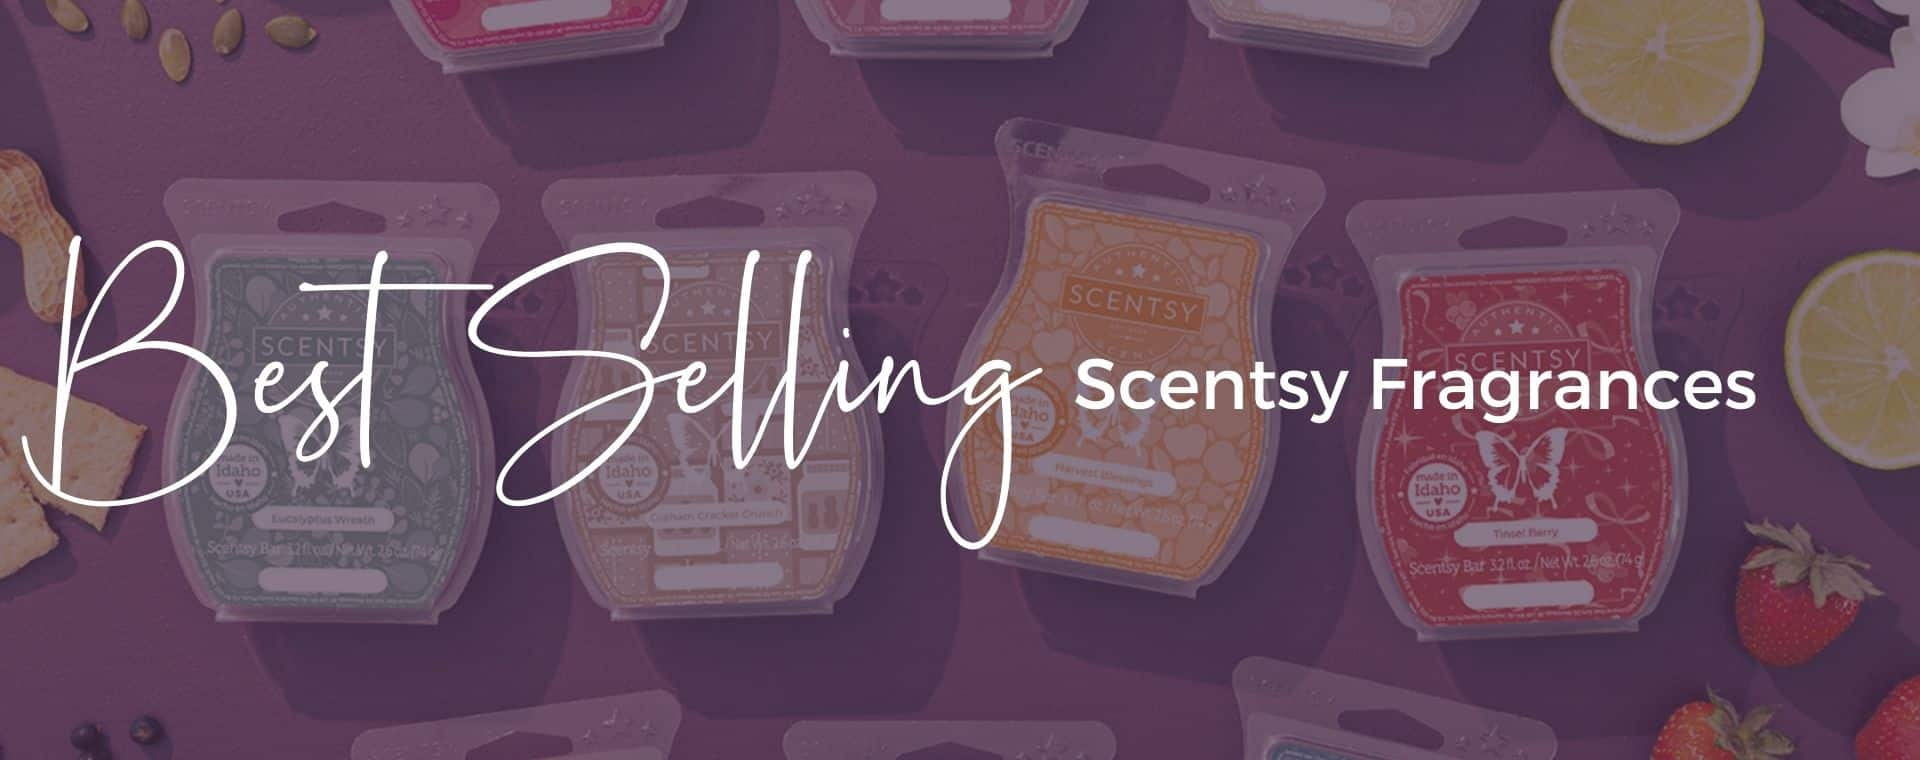 Best Selling Scentsy Fragrances 1